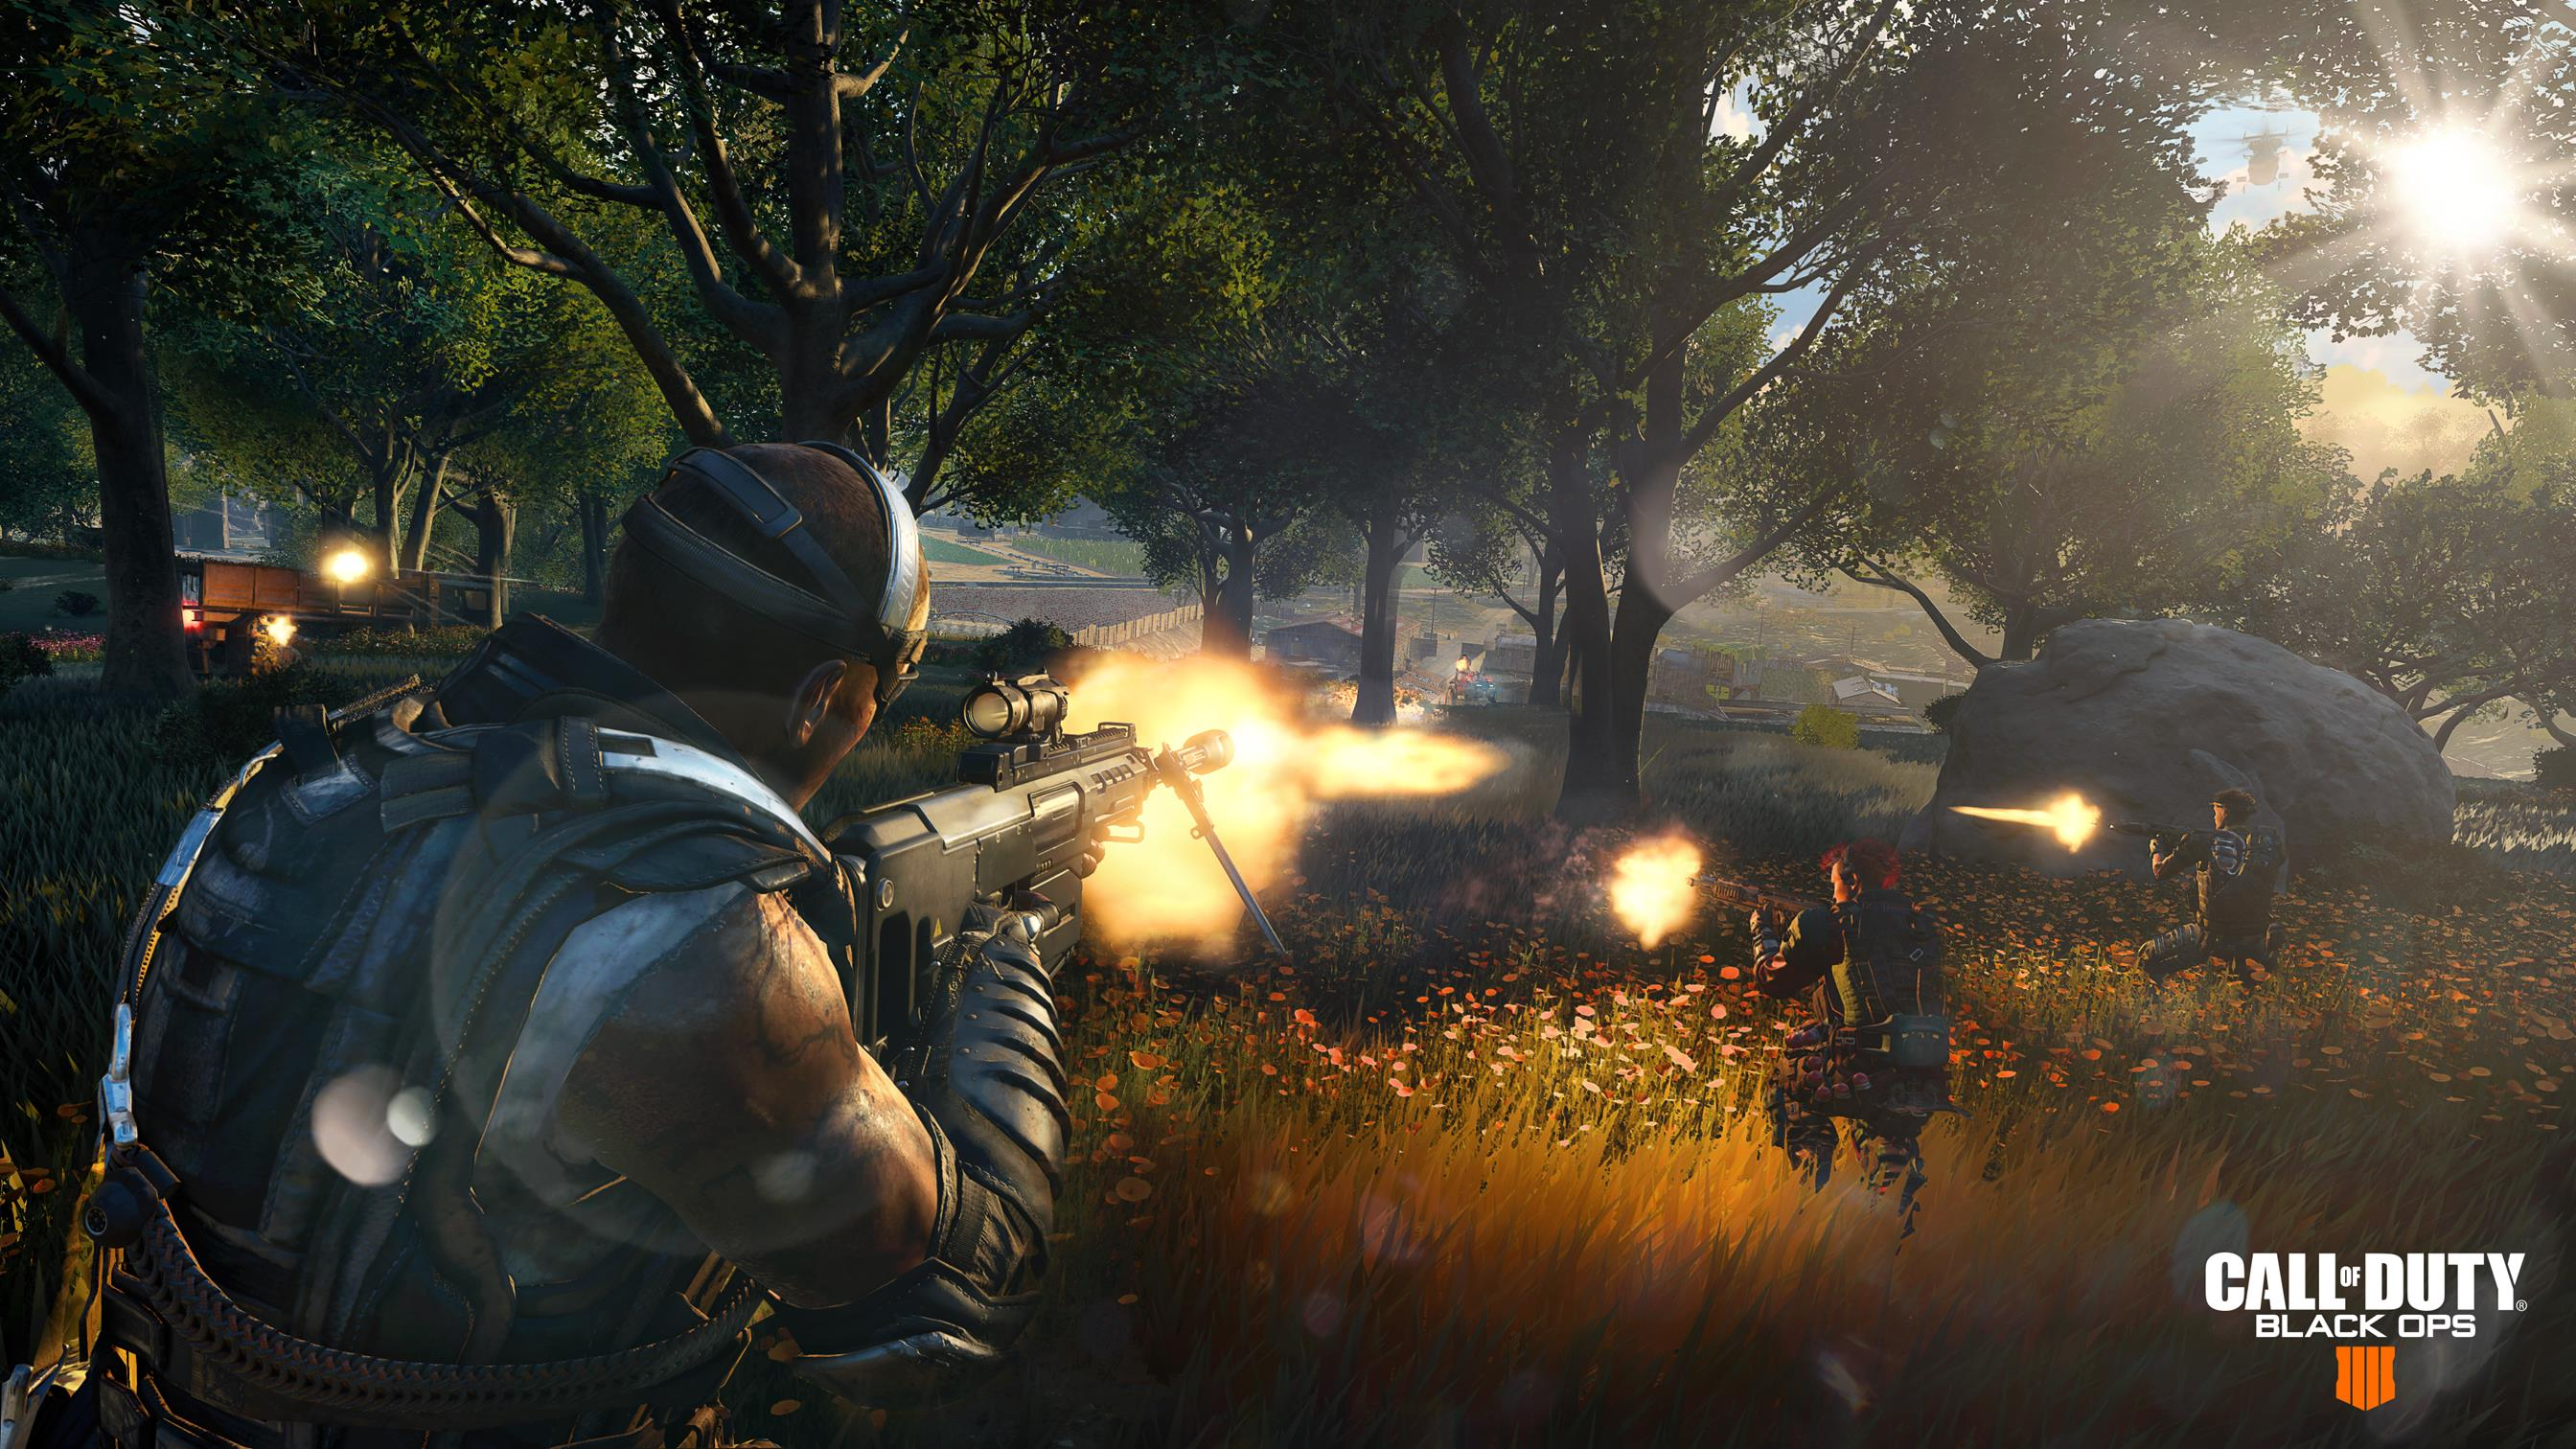 Call of Duty: Black Ops 4 Blackout PC beta frame-rate will be capped